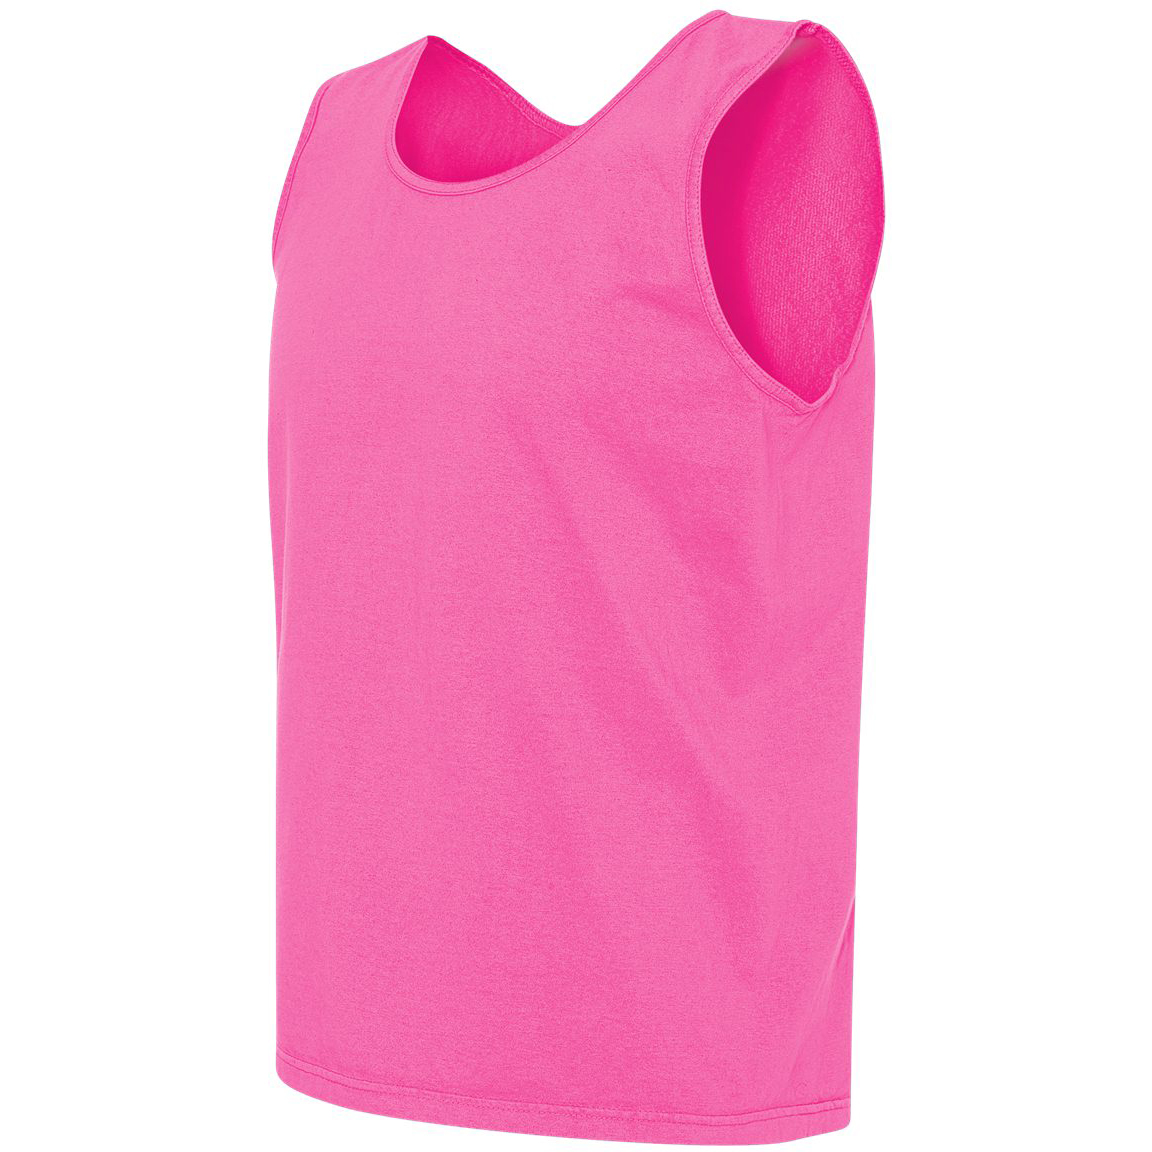 Comfort colors garment dyed heavyweight ringspun tank